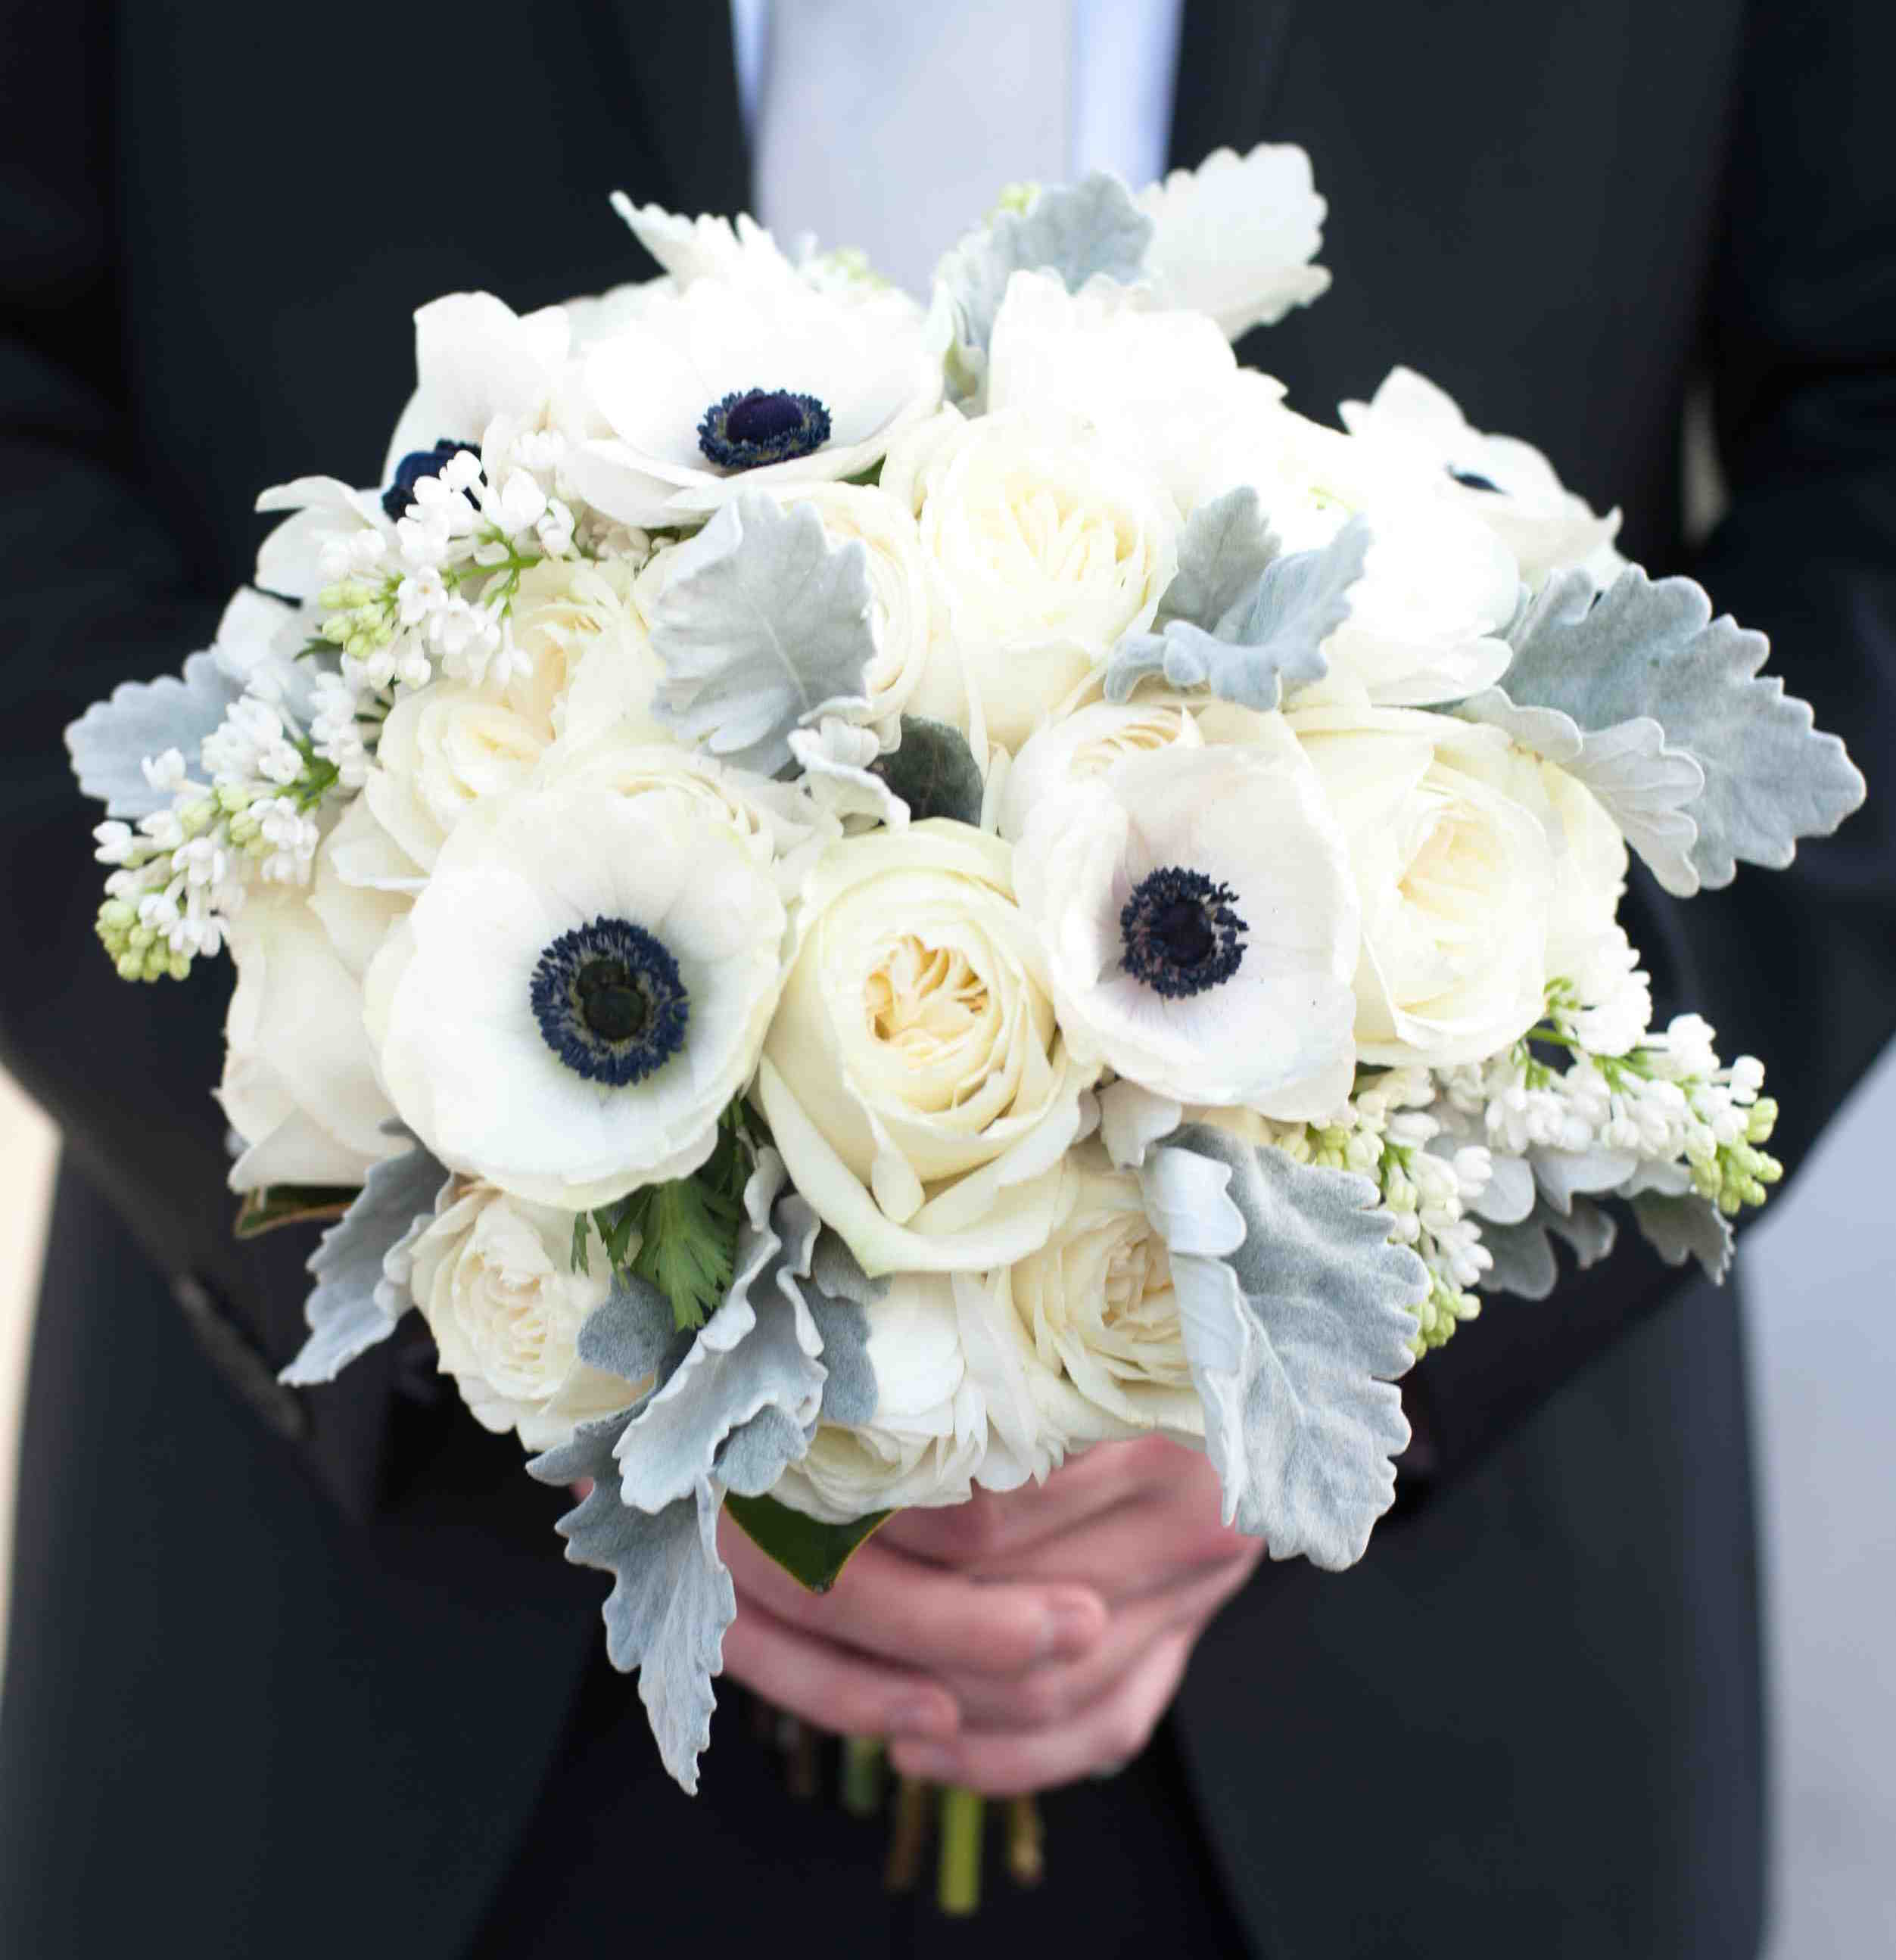 Wedding Flowers: Anemone Bouquets & Anemone Centerpieces - Inside ...